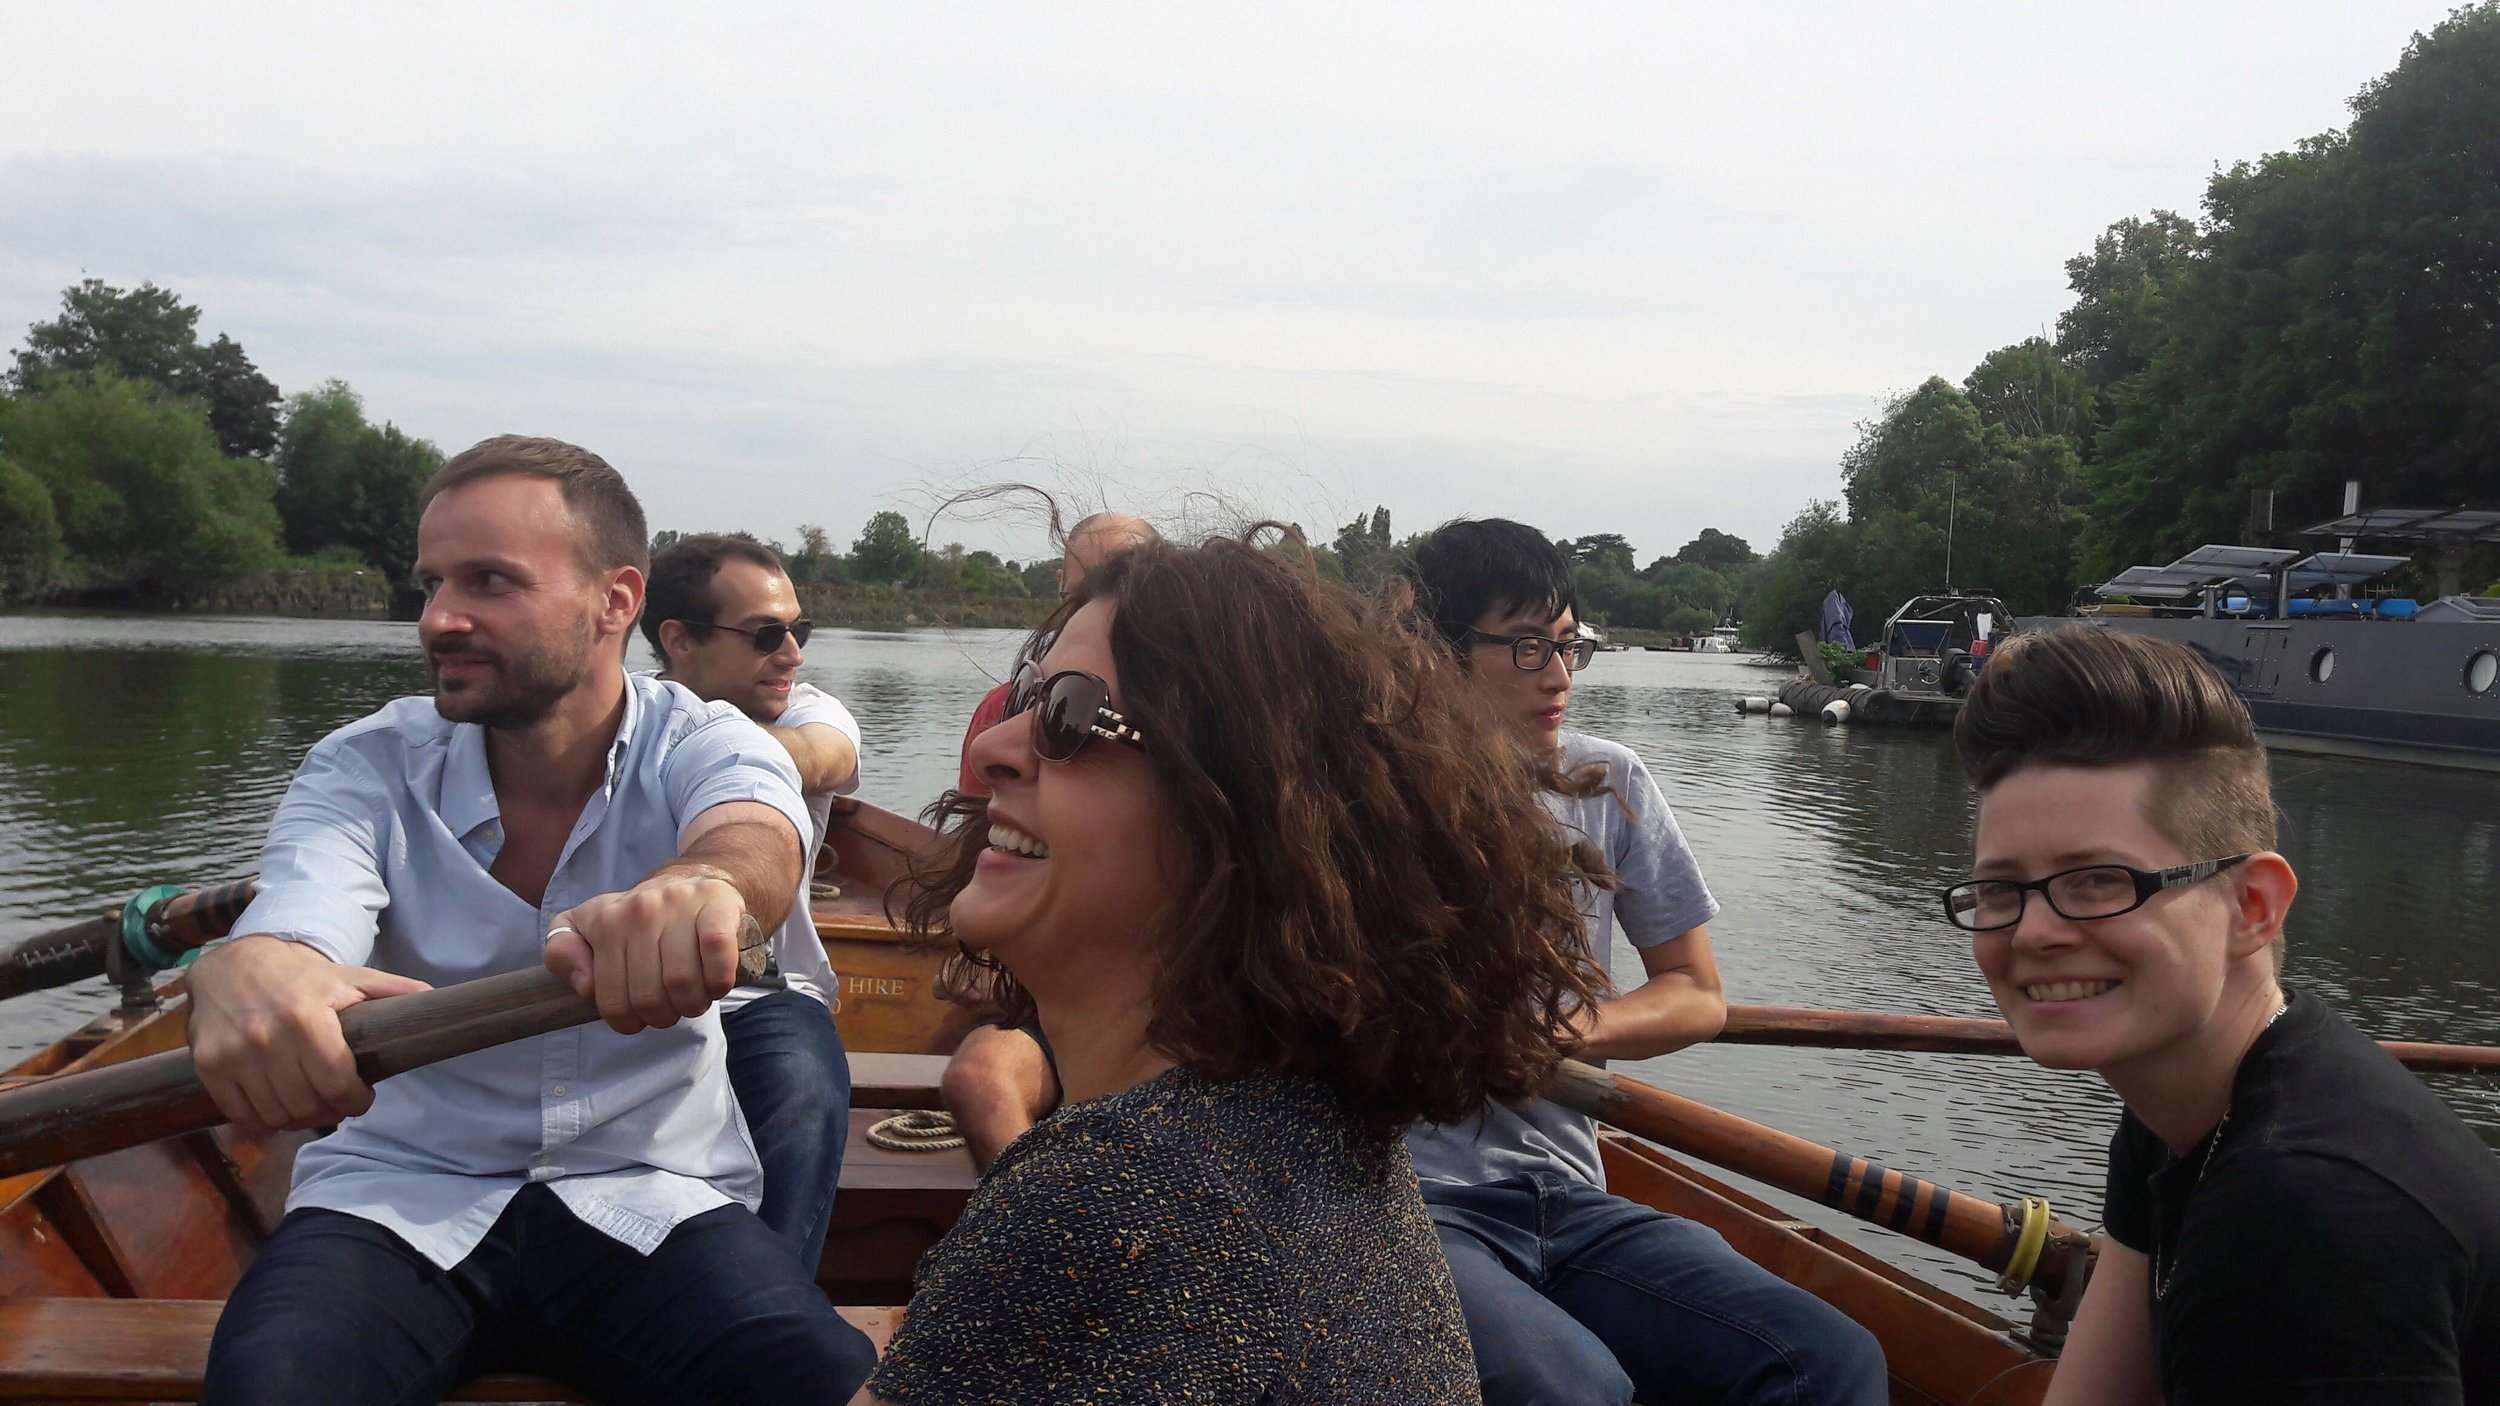 The EduMe team out on the river